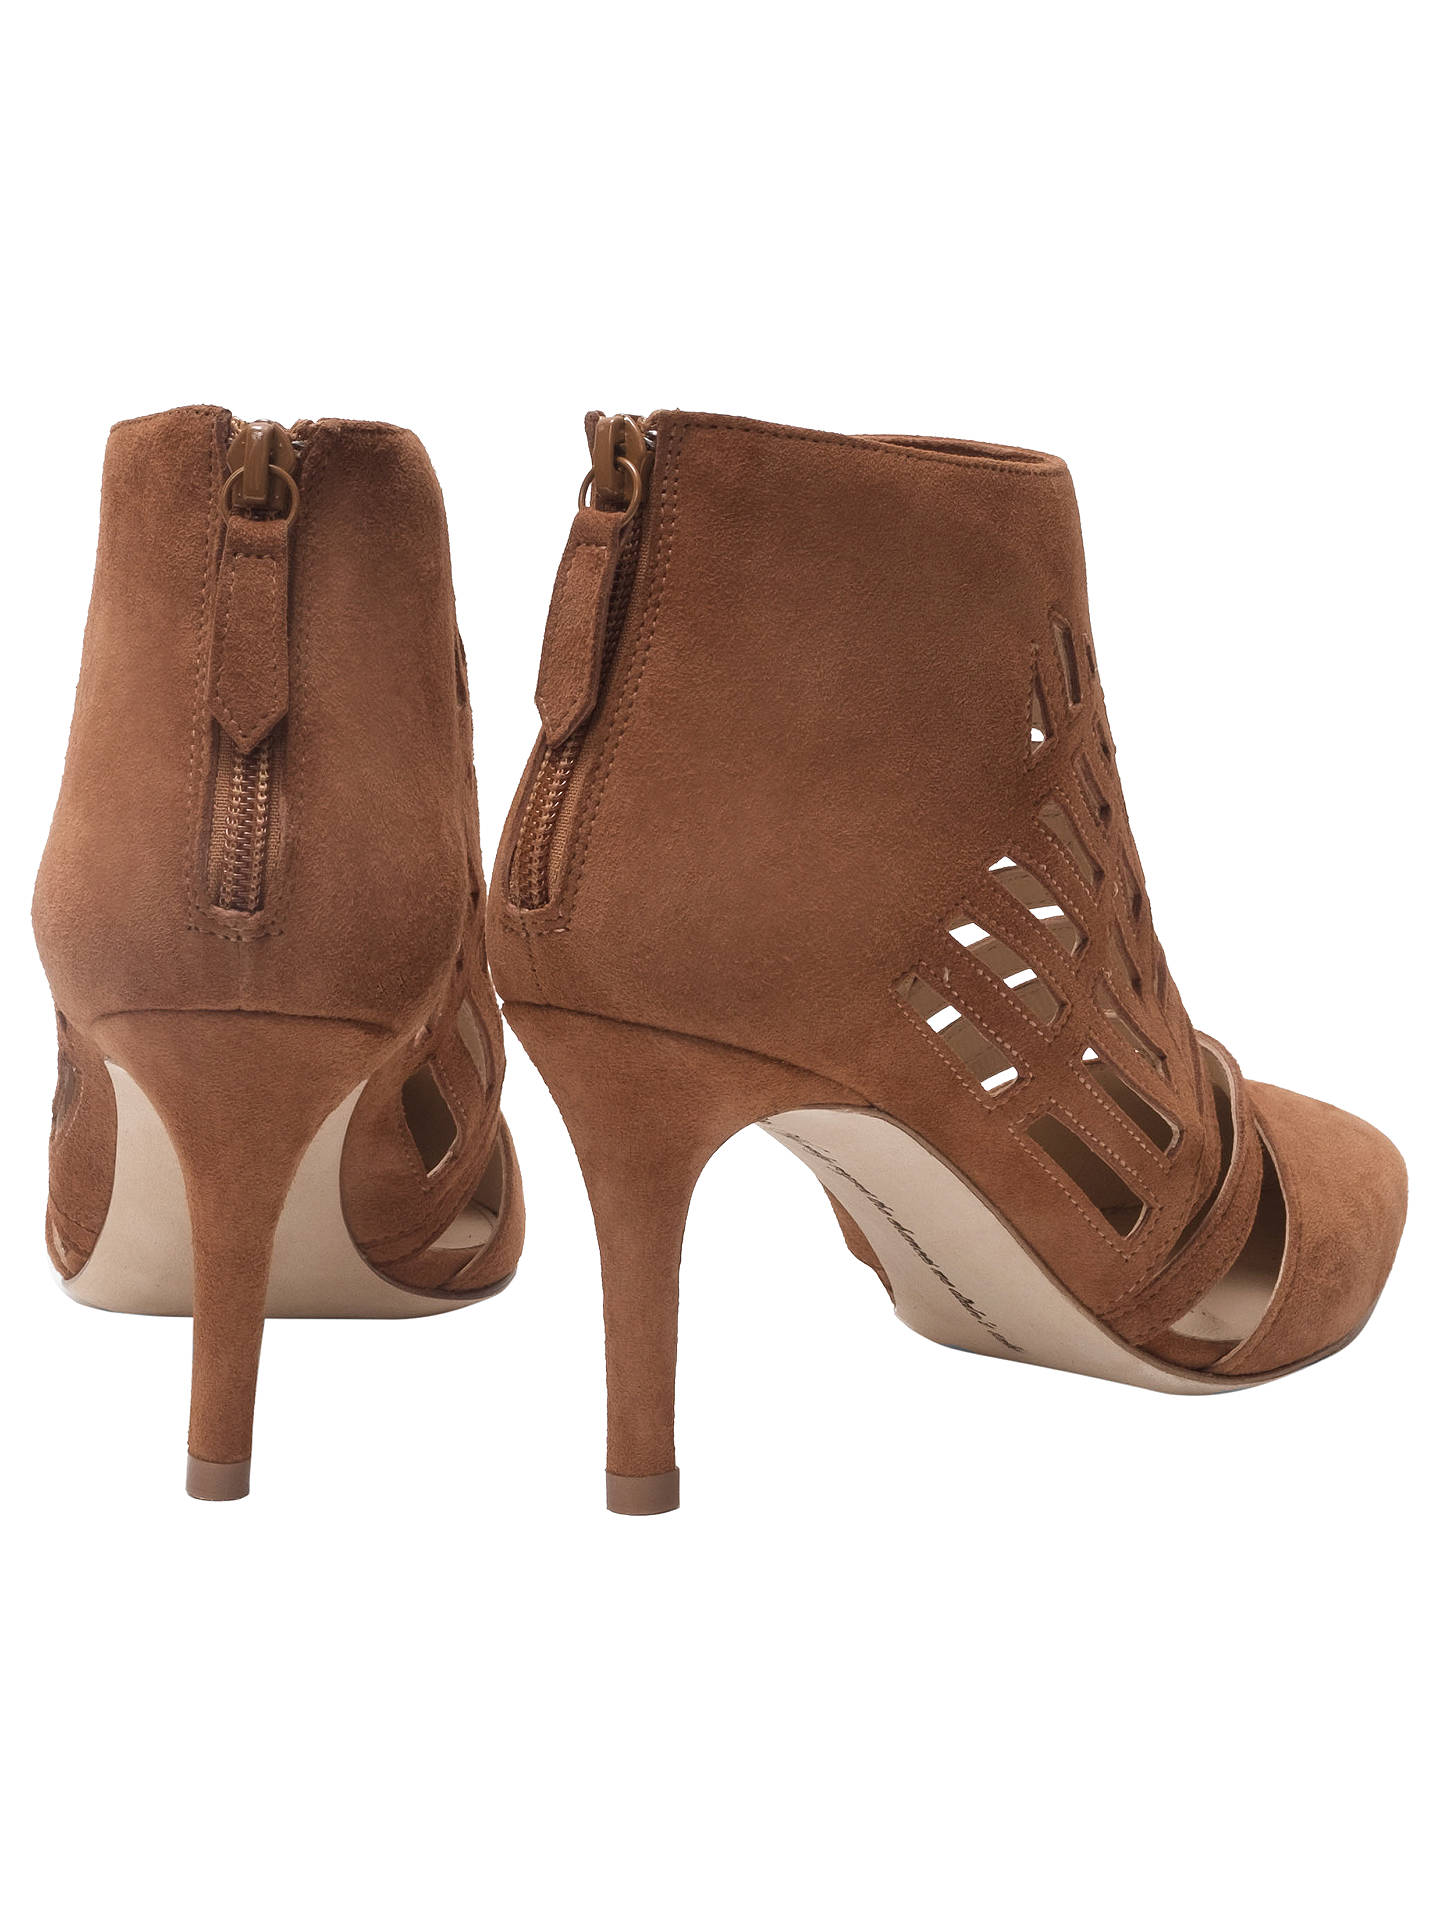 Buy Sargossa Spider Stiletto Heel Shoe Boots, Brown, 8 Online at johnlewis.com